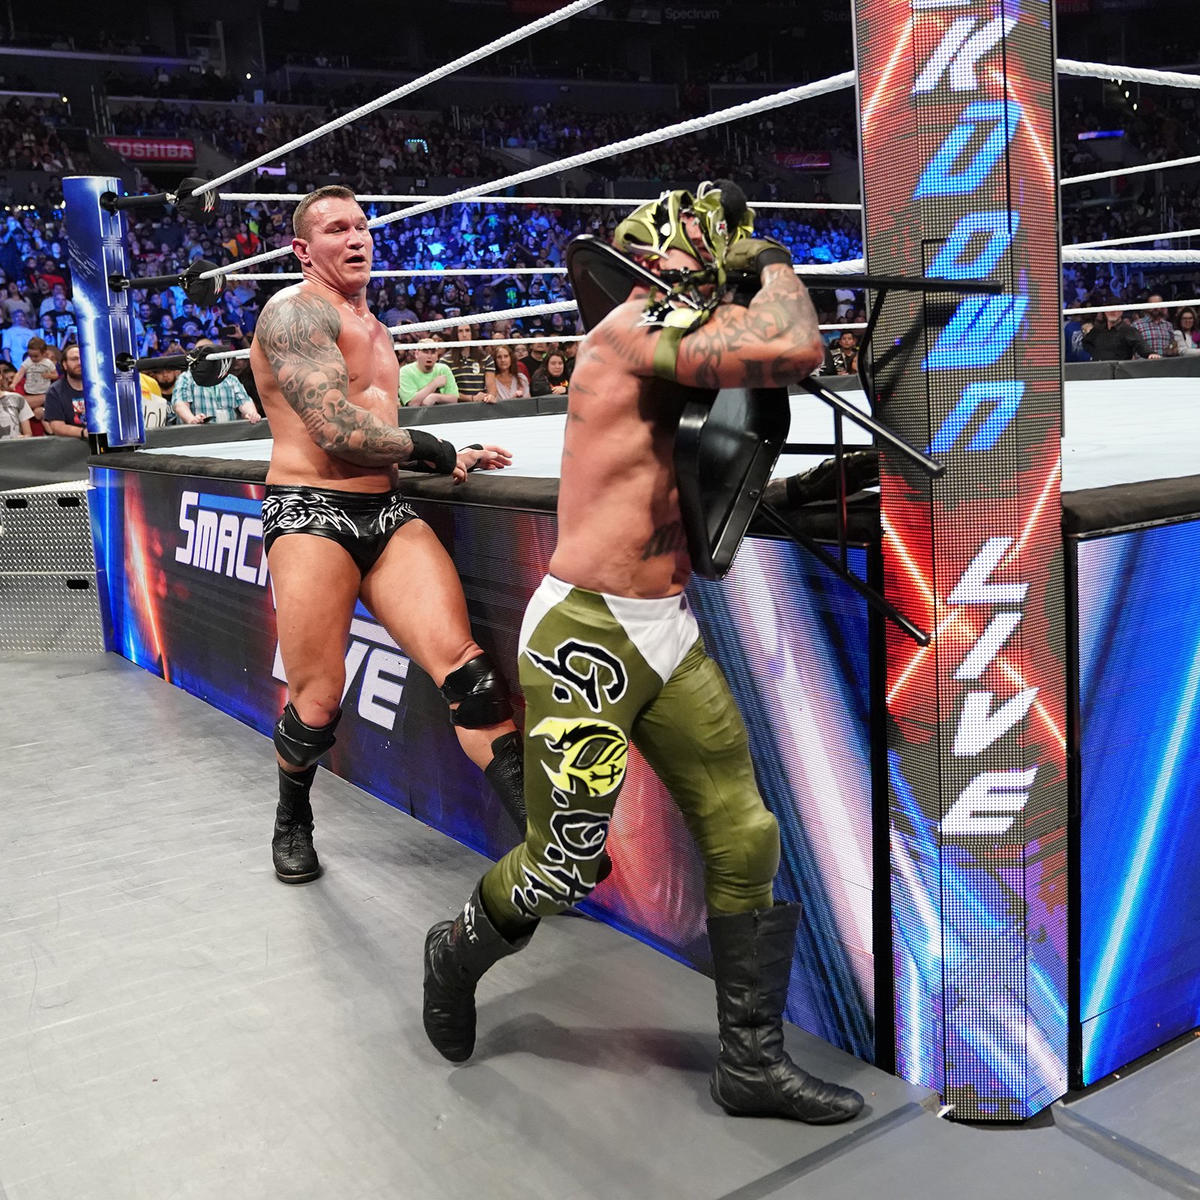 After the bout, Orton places a chair around Mysterio's throat and rams him into the ring post!